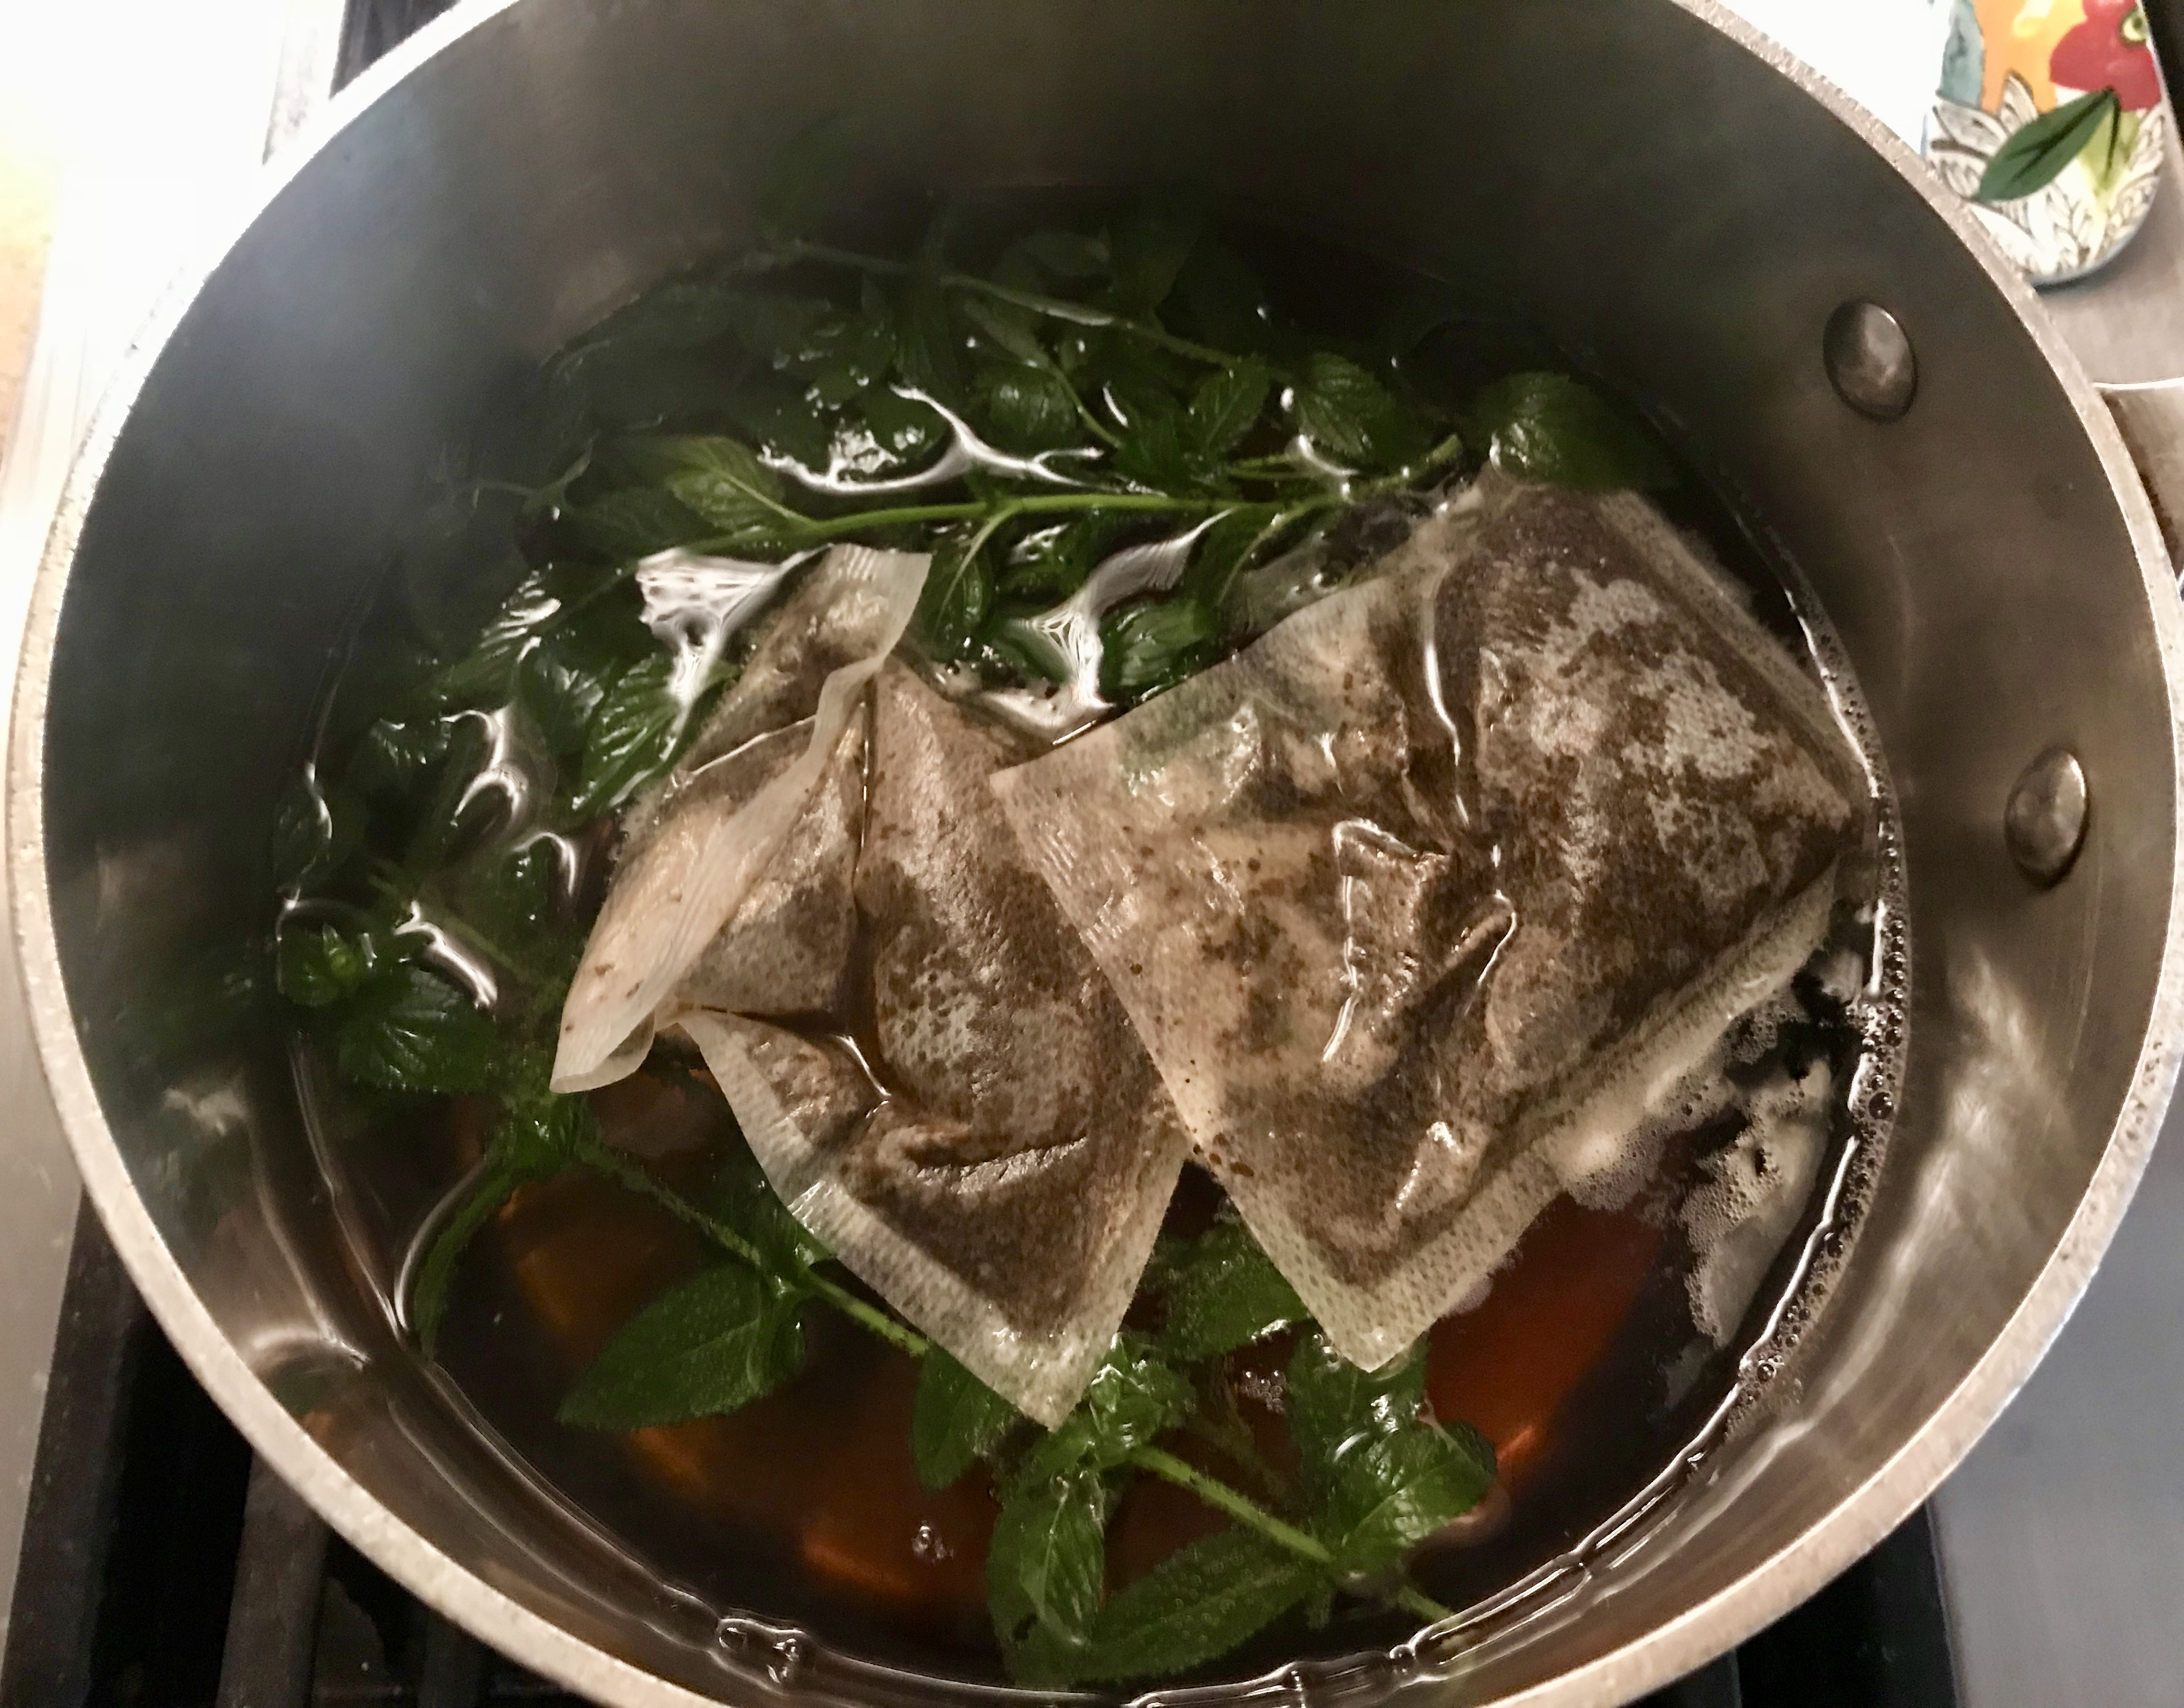 Steeping mint and tea